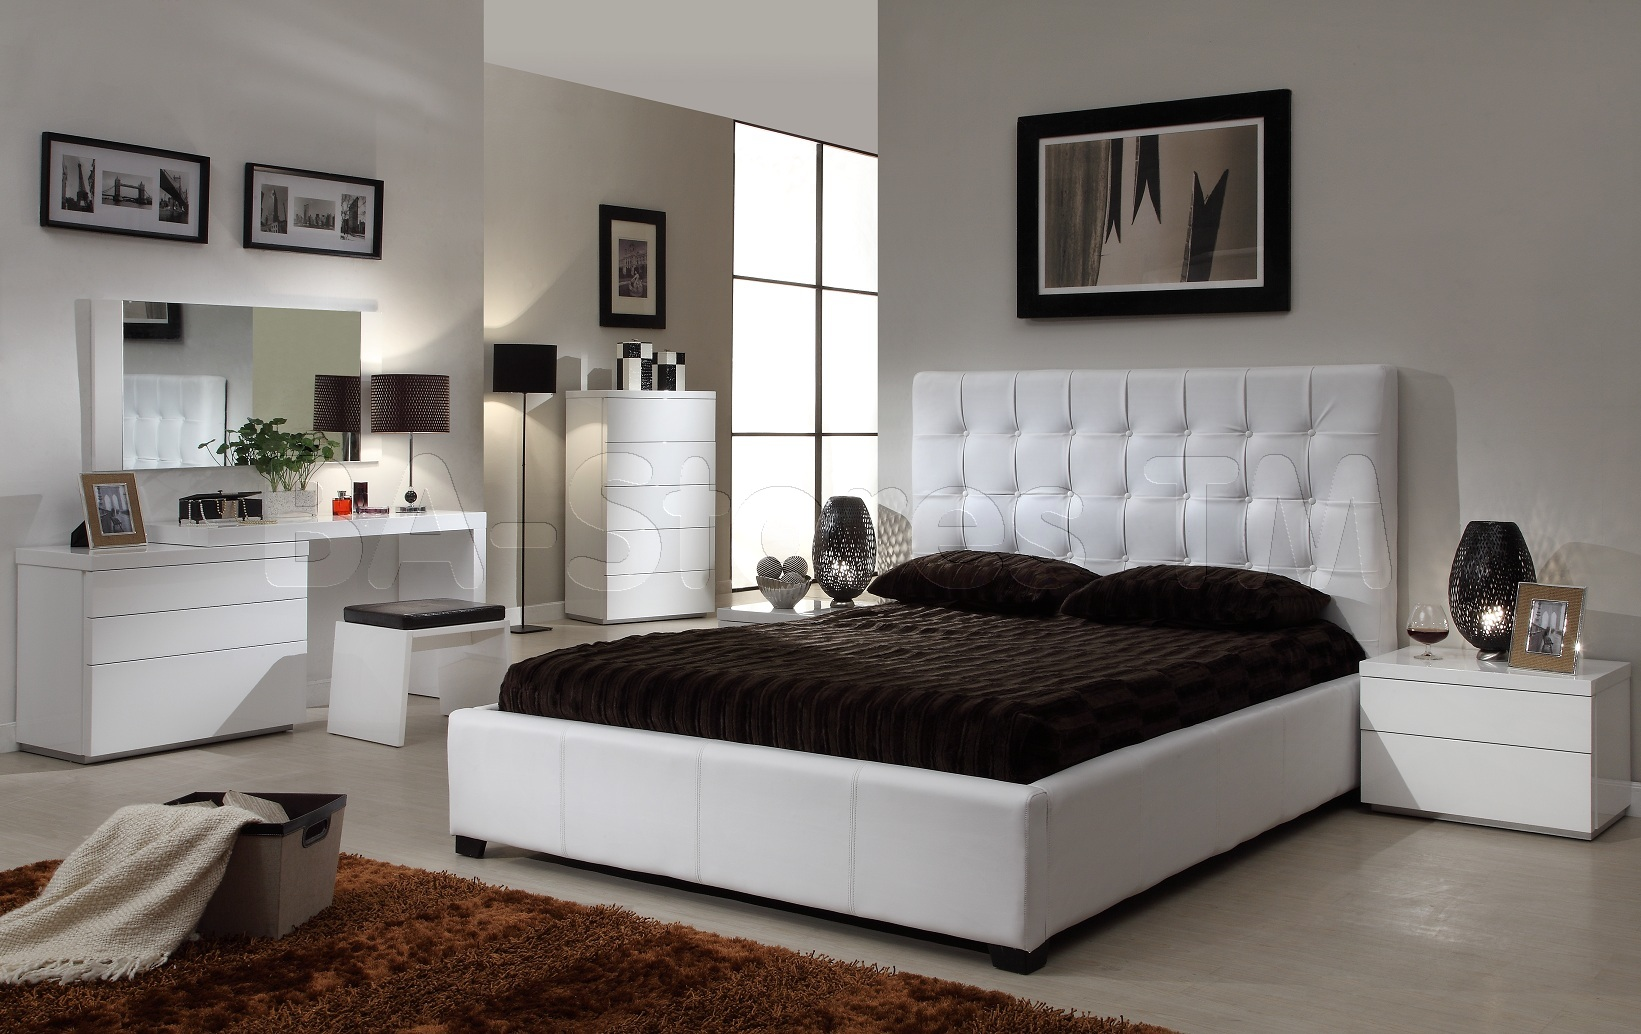 Luxury Queen Size Bed Dimensions Ideas (Image 6 of 10)